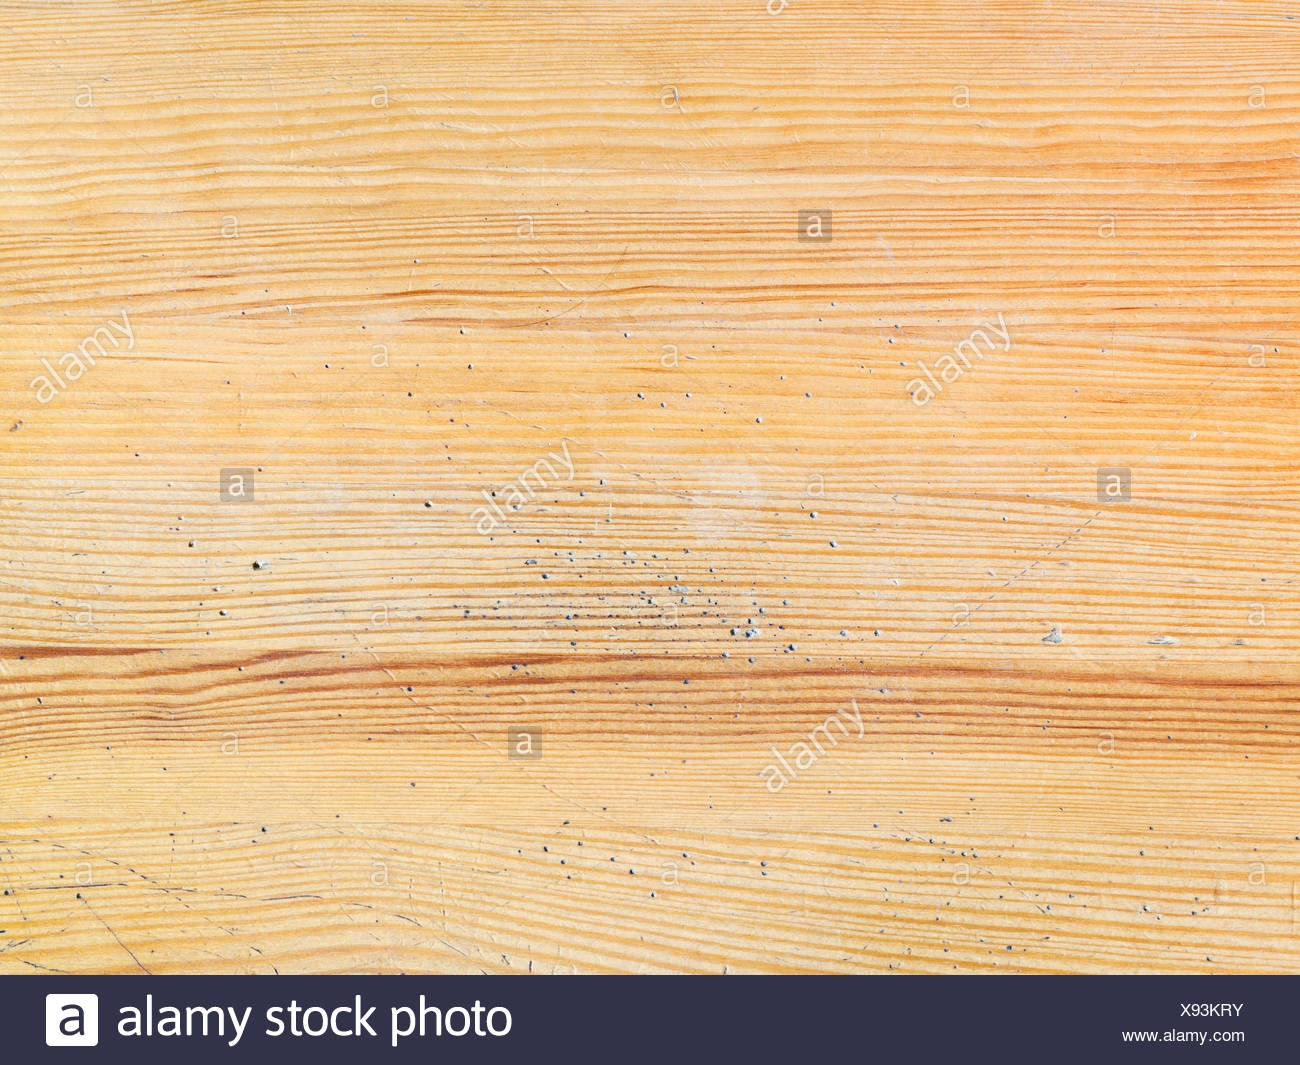 board desk wood pine material drug anaesthetic addictive drug surface timber parquet used painted pattern hardwood plank - Stock Image